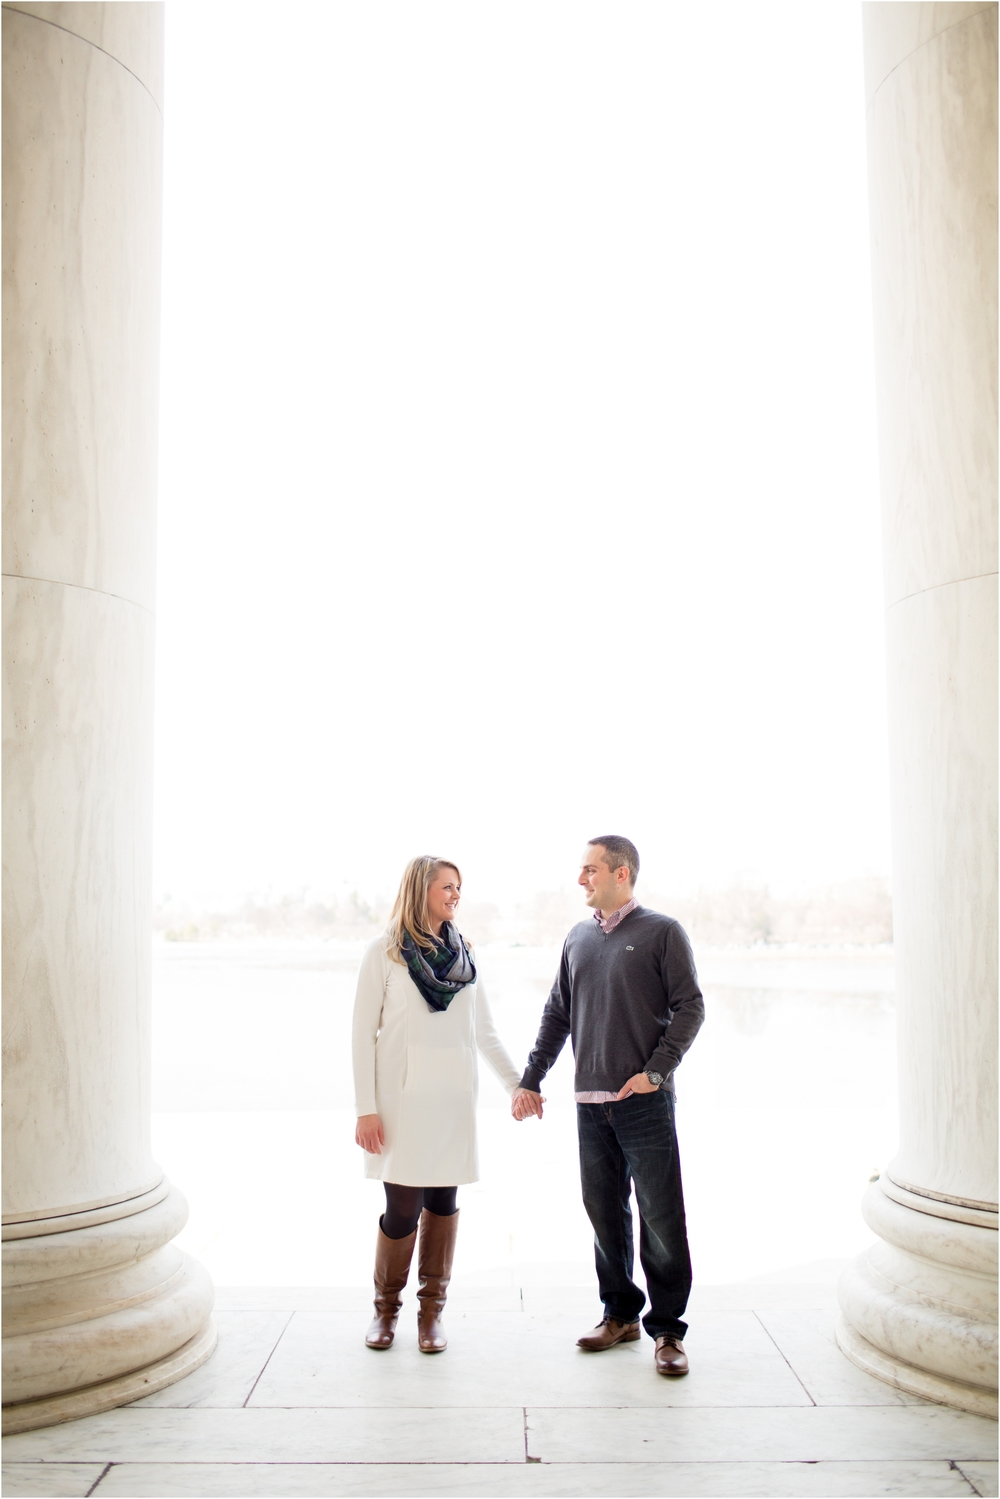 Mary & Nick Engaged-77.jpg